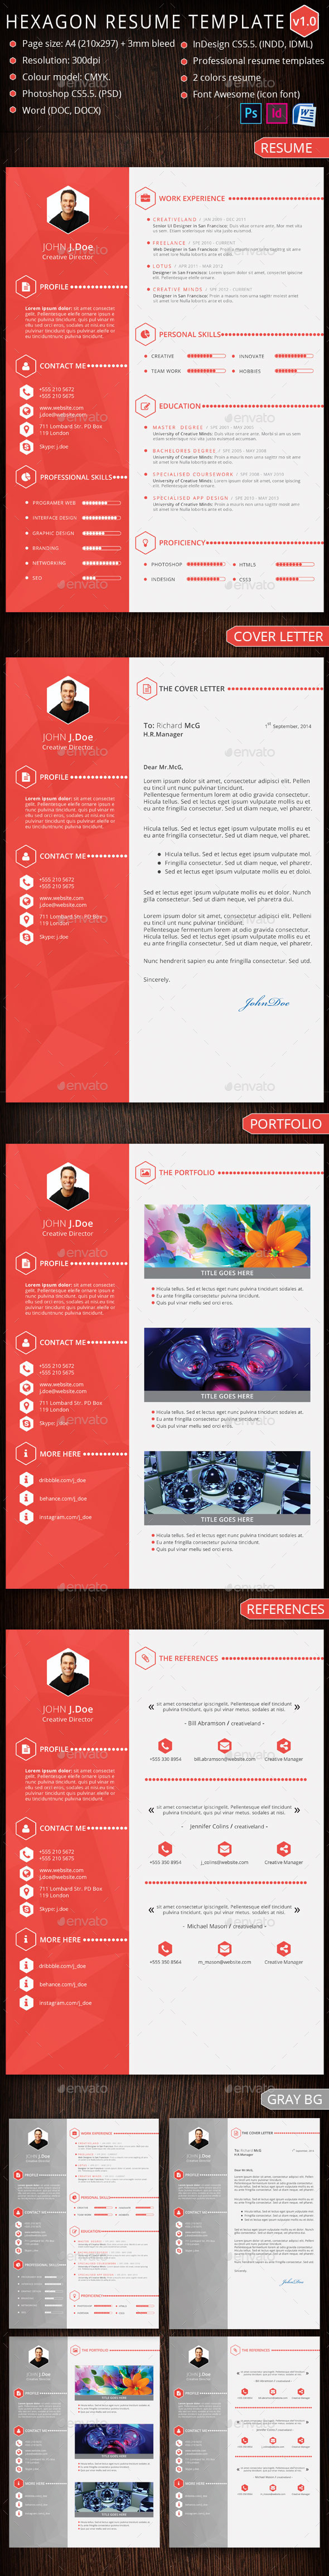 GraphicRiver Hexagon Resume Template 10144299